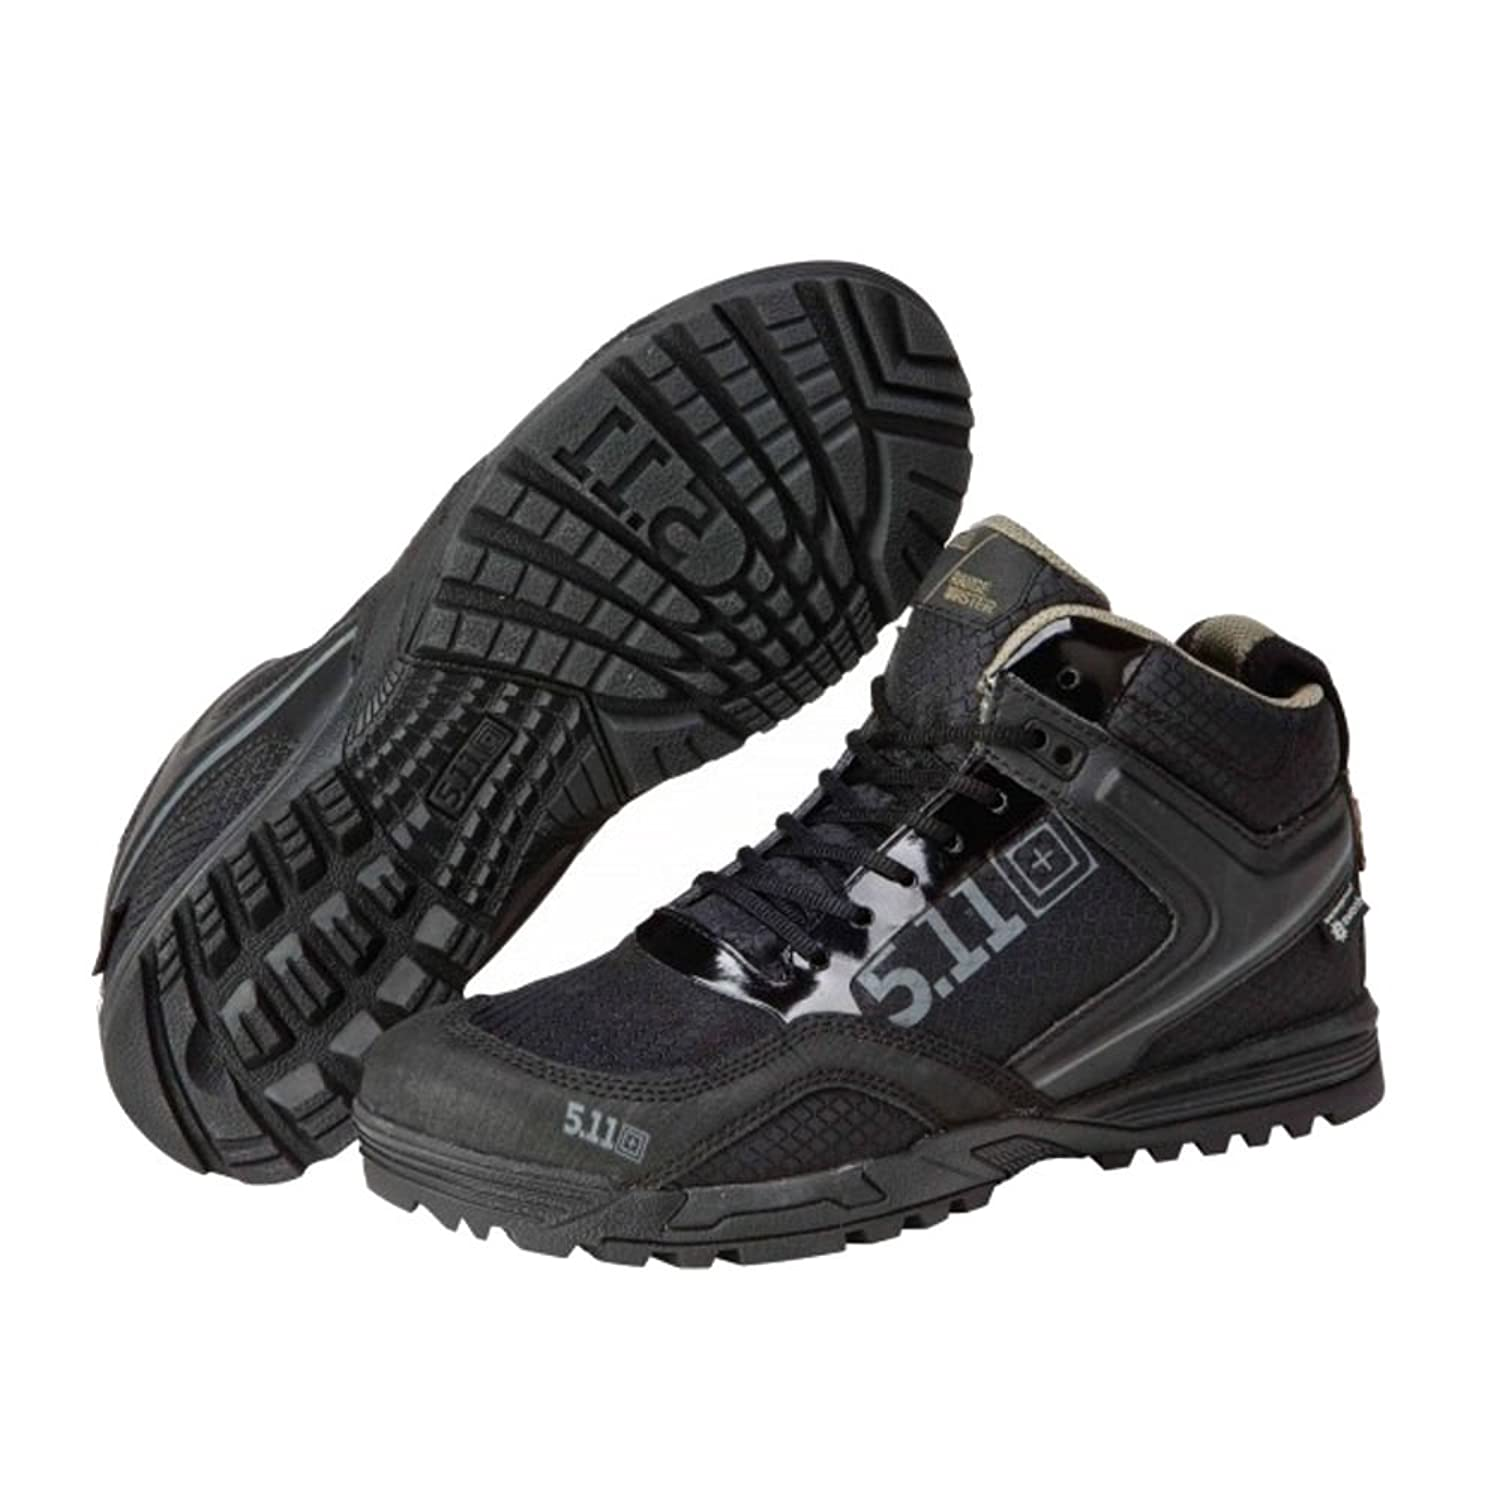 5.11 Men's Waterproof Rangmaster Hiking Boot